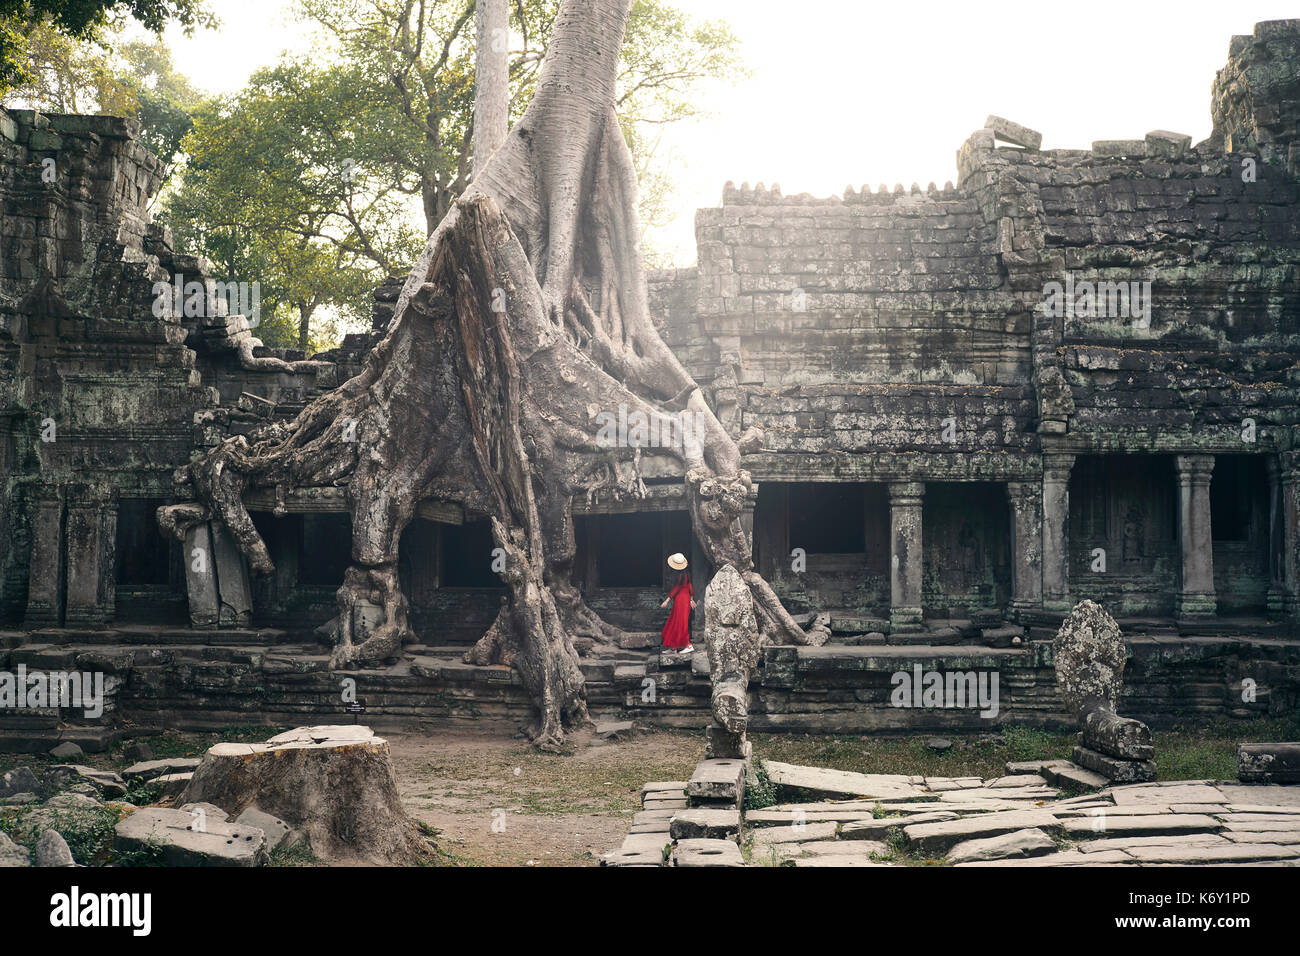 Girl with hat with a red dress walking around the temple of Preah Kahn in Angkor, Siem Reap, Cambodia - Stock Image